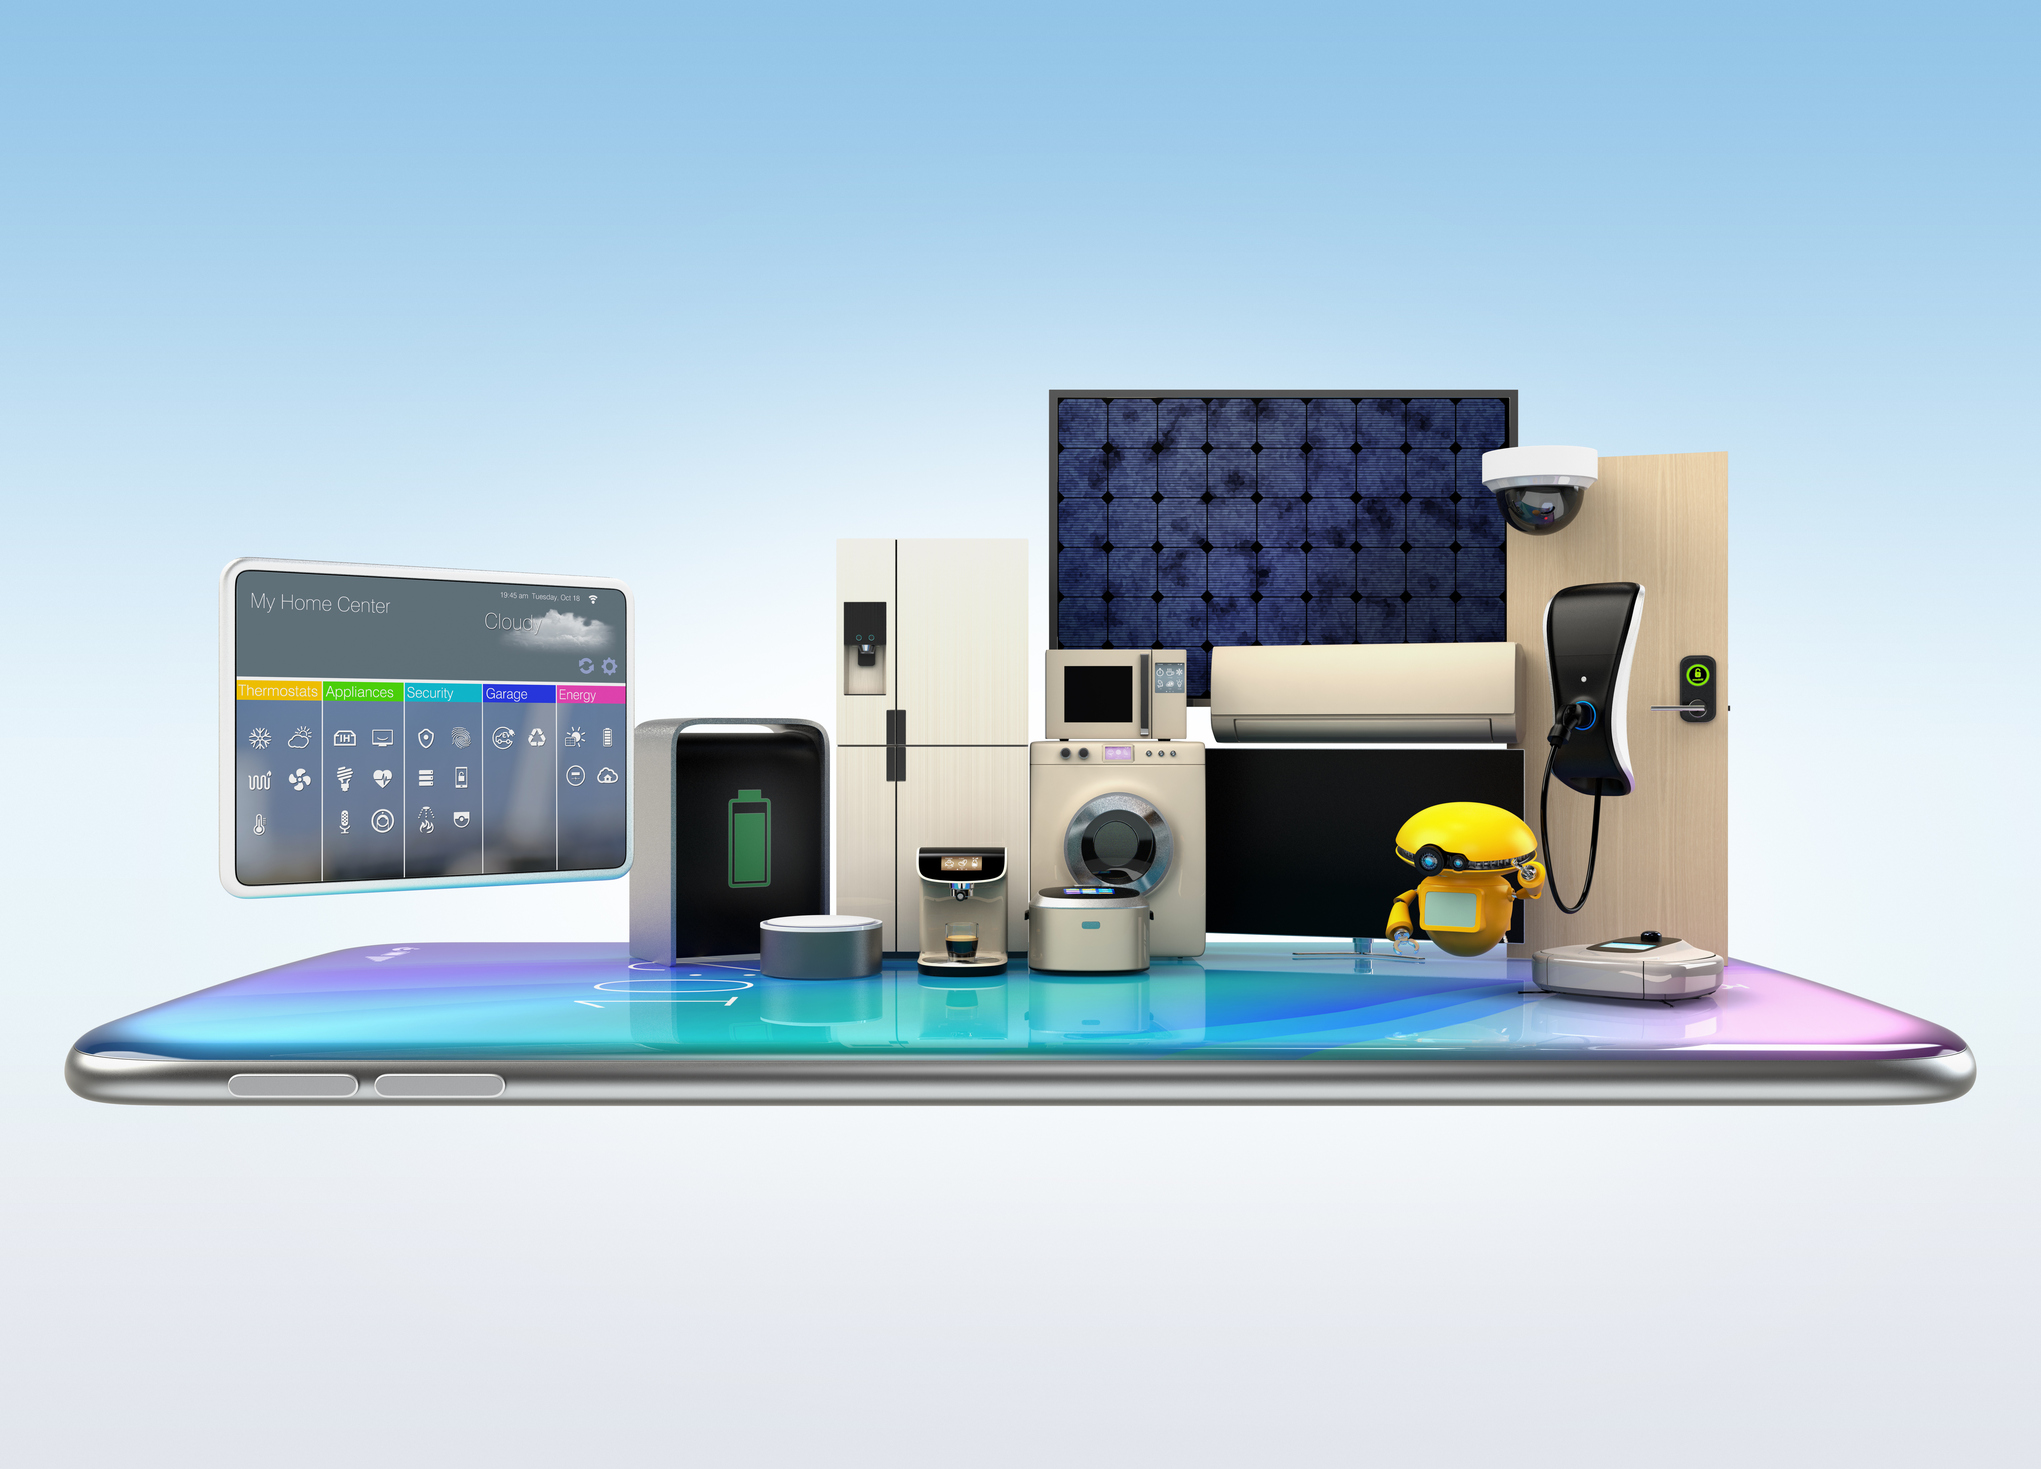 Consumentenelektronica   Smart Products   Retail   Domotica   Internet of Things